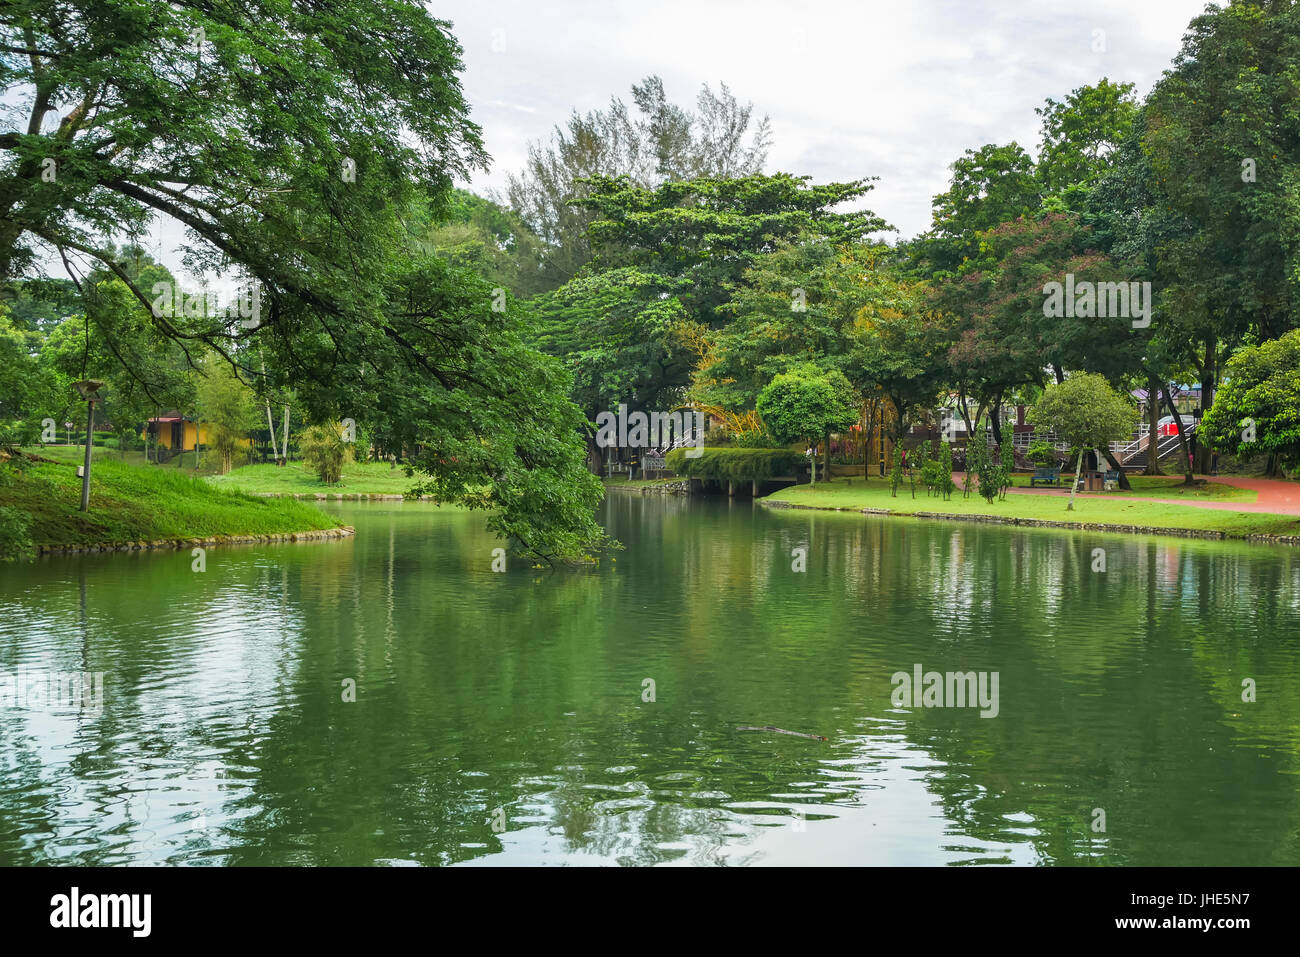 Permaisuri Lake Garden is one of the famous park in Cheras, there is a pathway for people to jogging and exercise - Stock Image